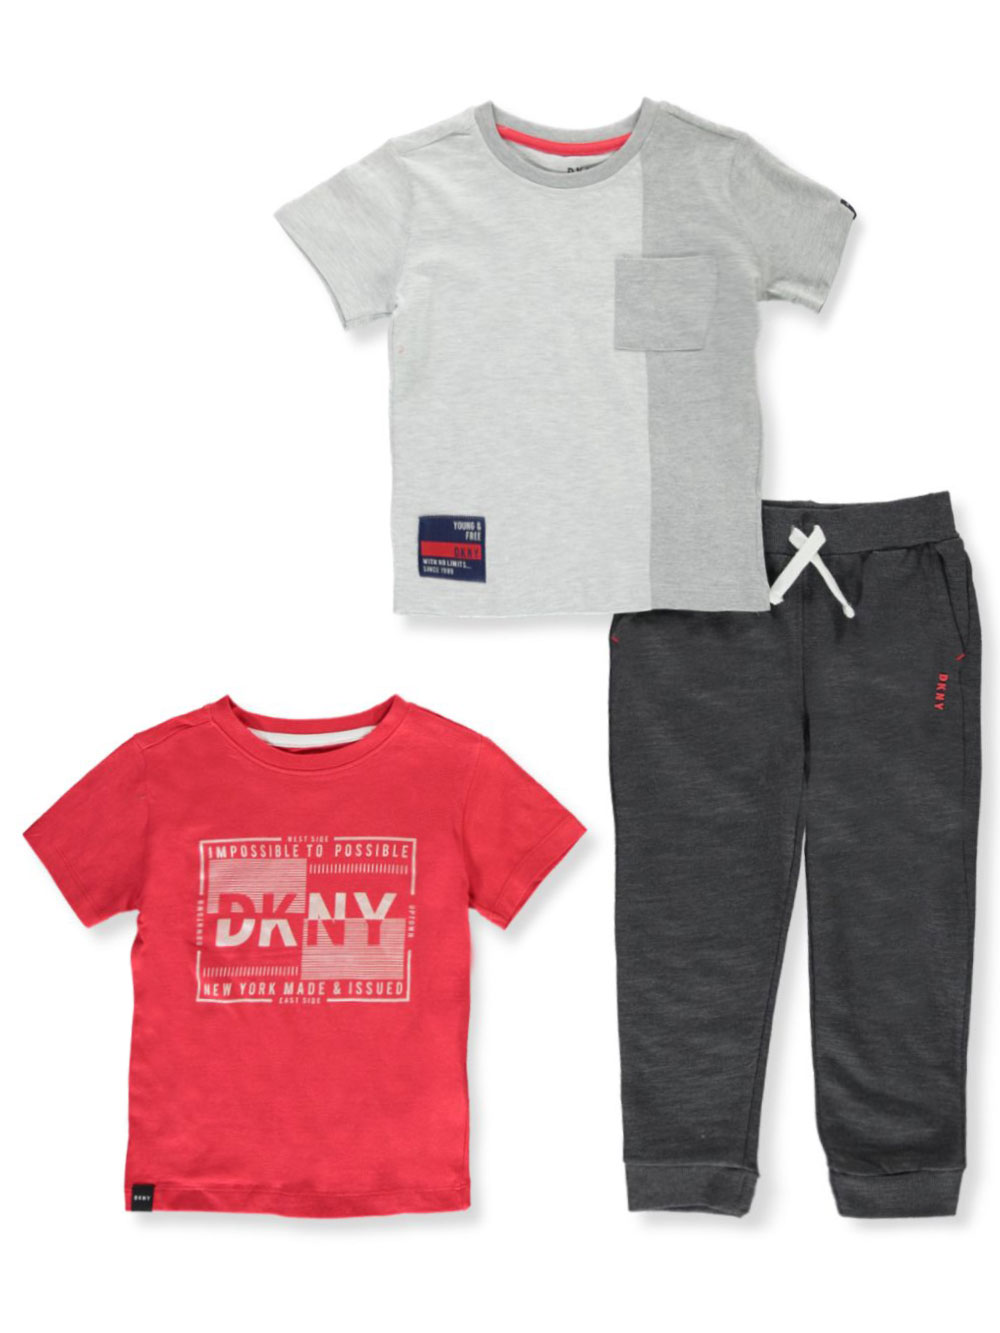 Boys' 3-Piece Joggers Set Outfit